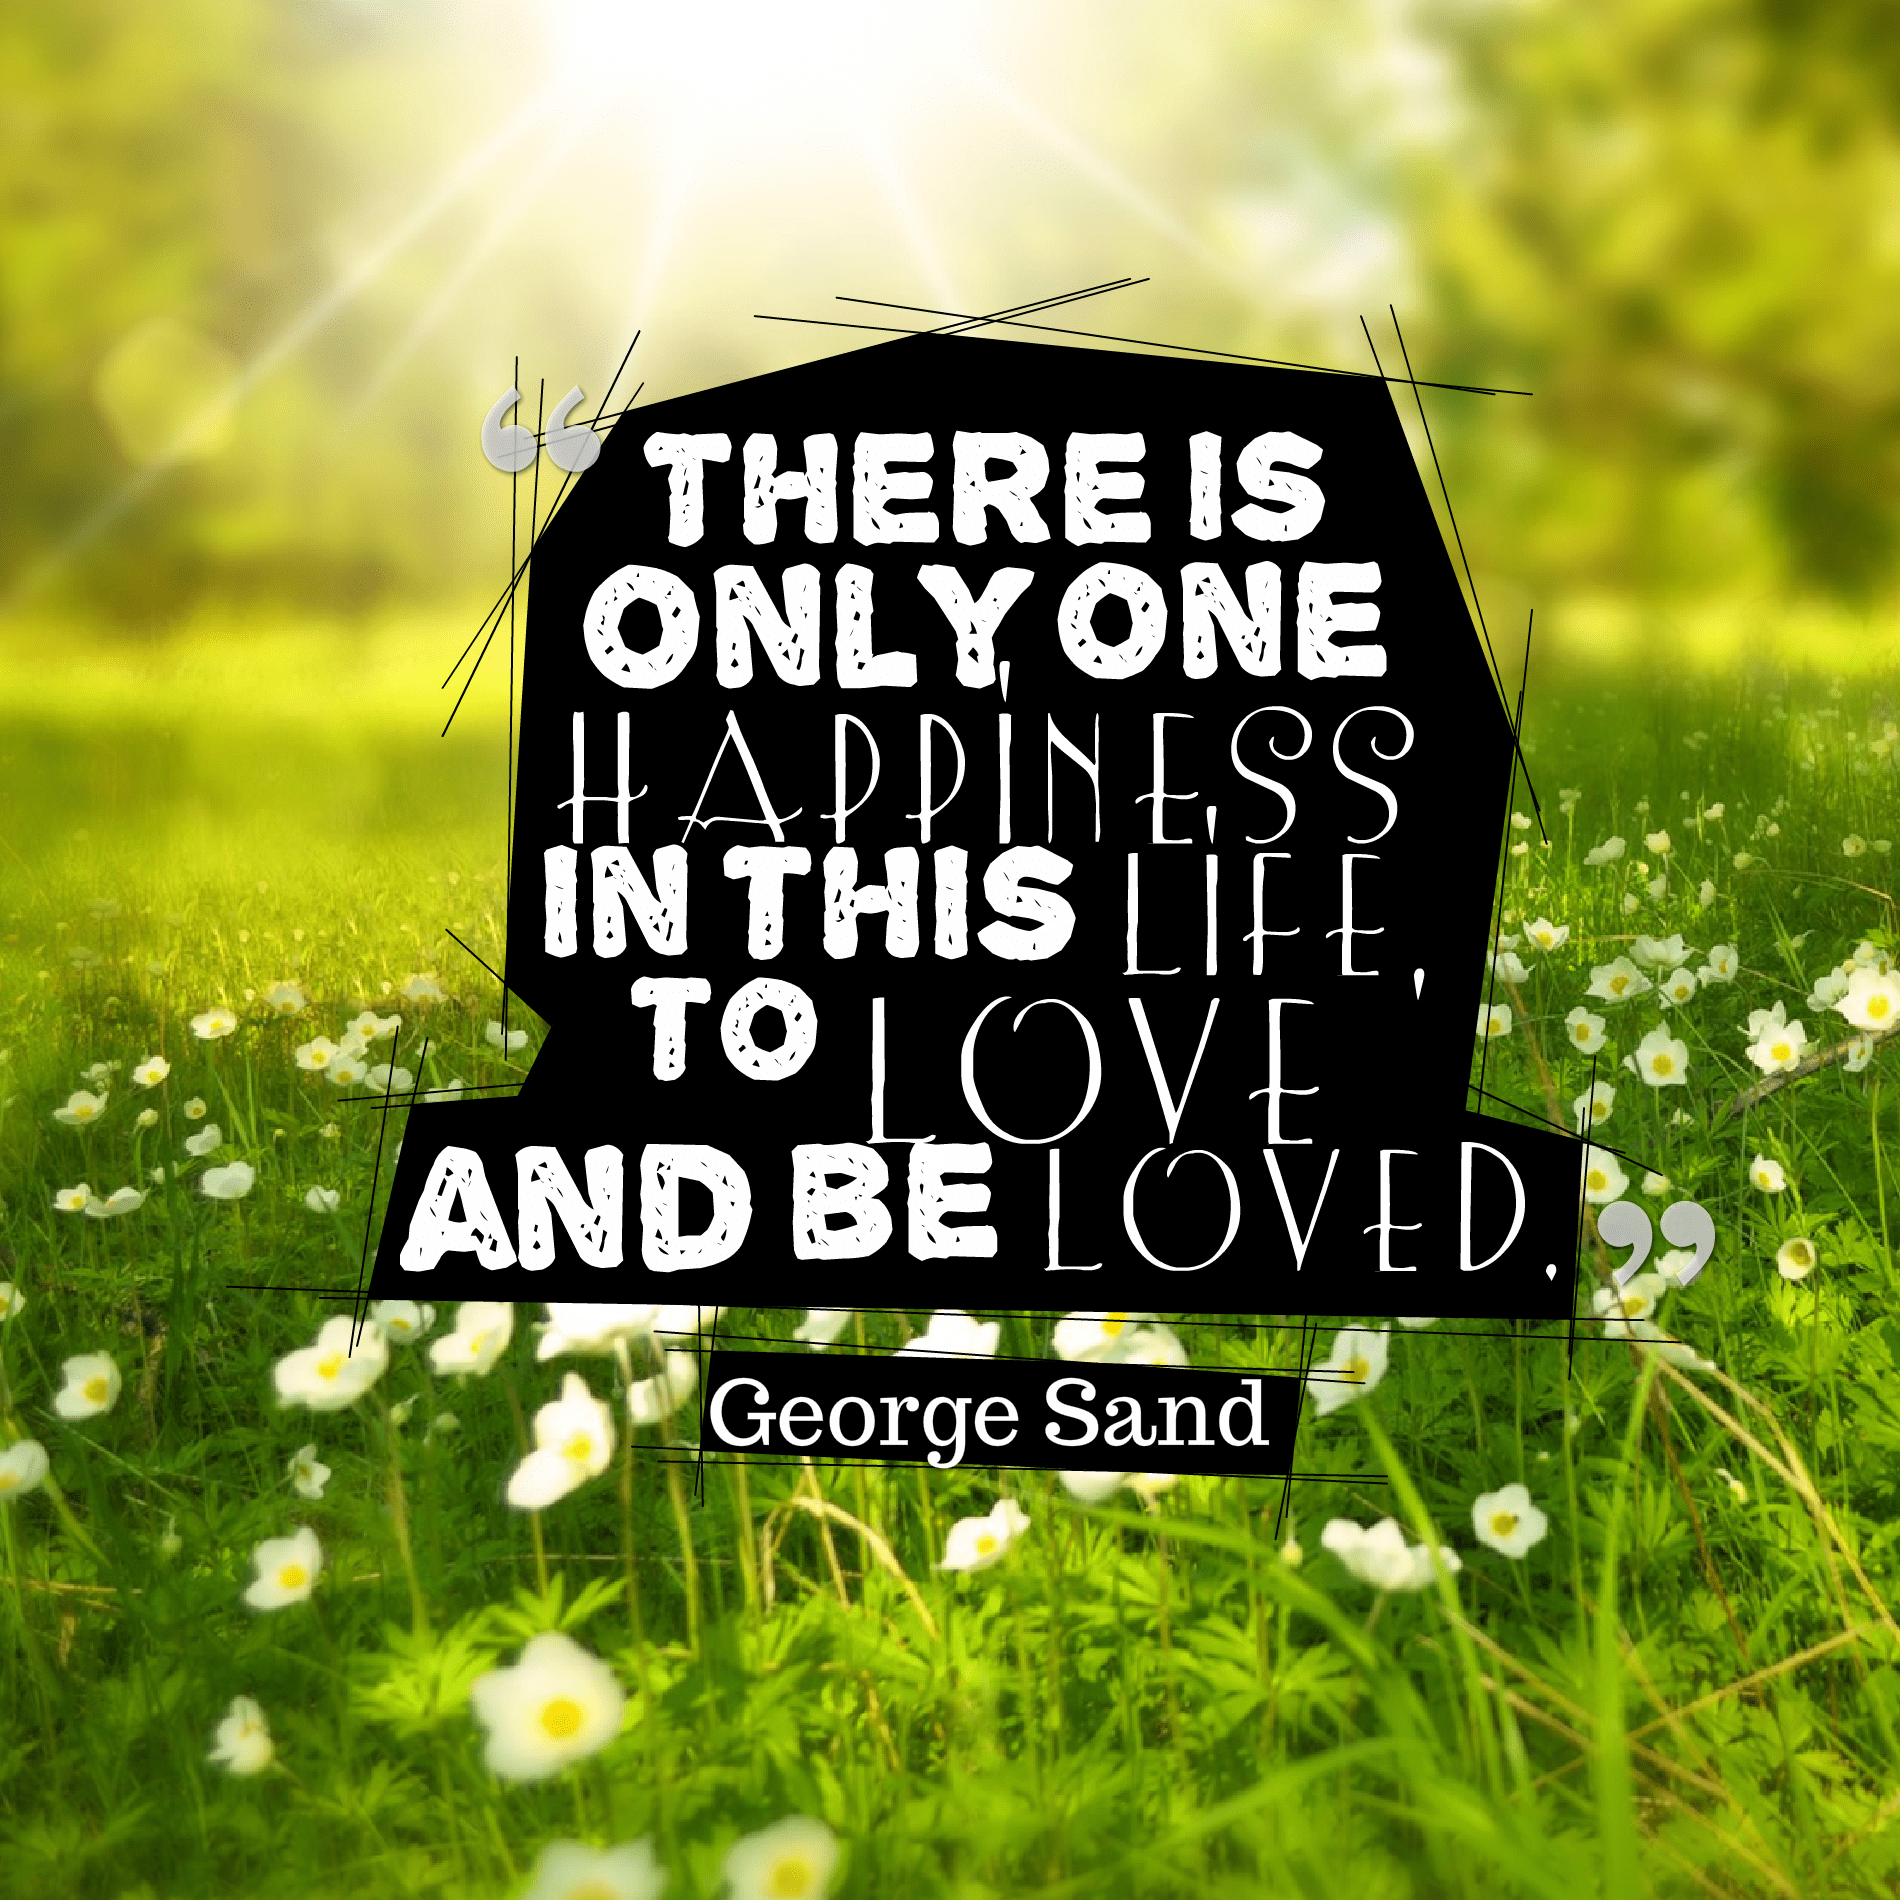 Quotes image of There is only one happiness in this life, to love and be loved.